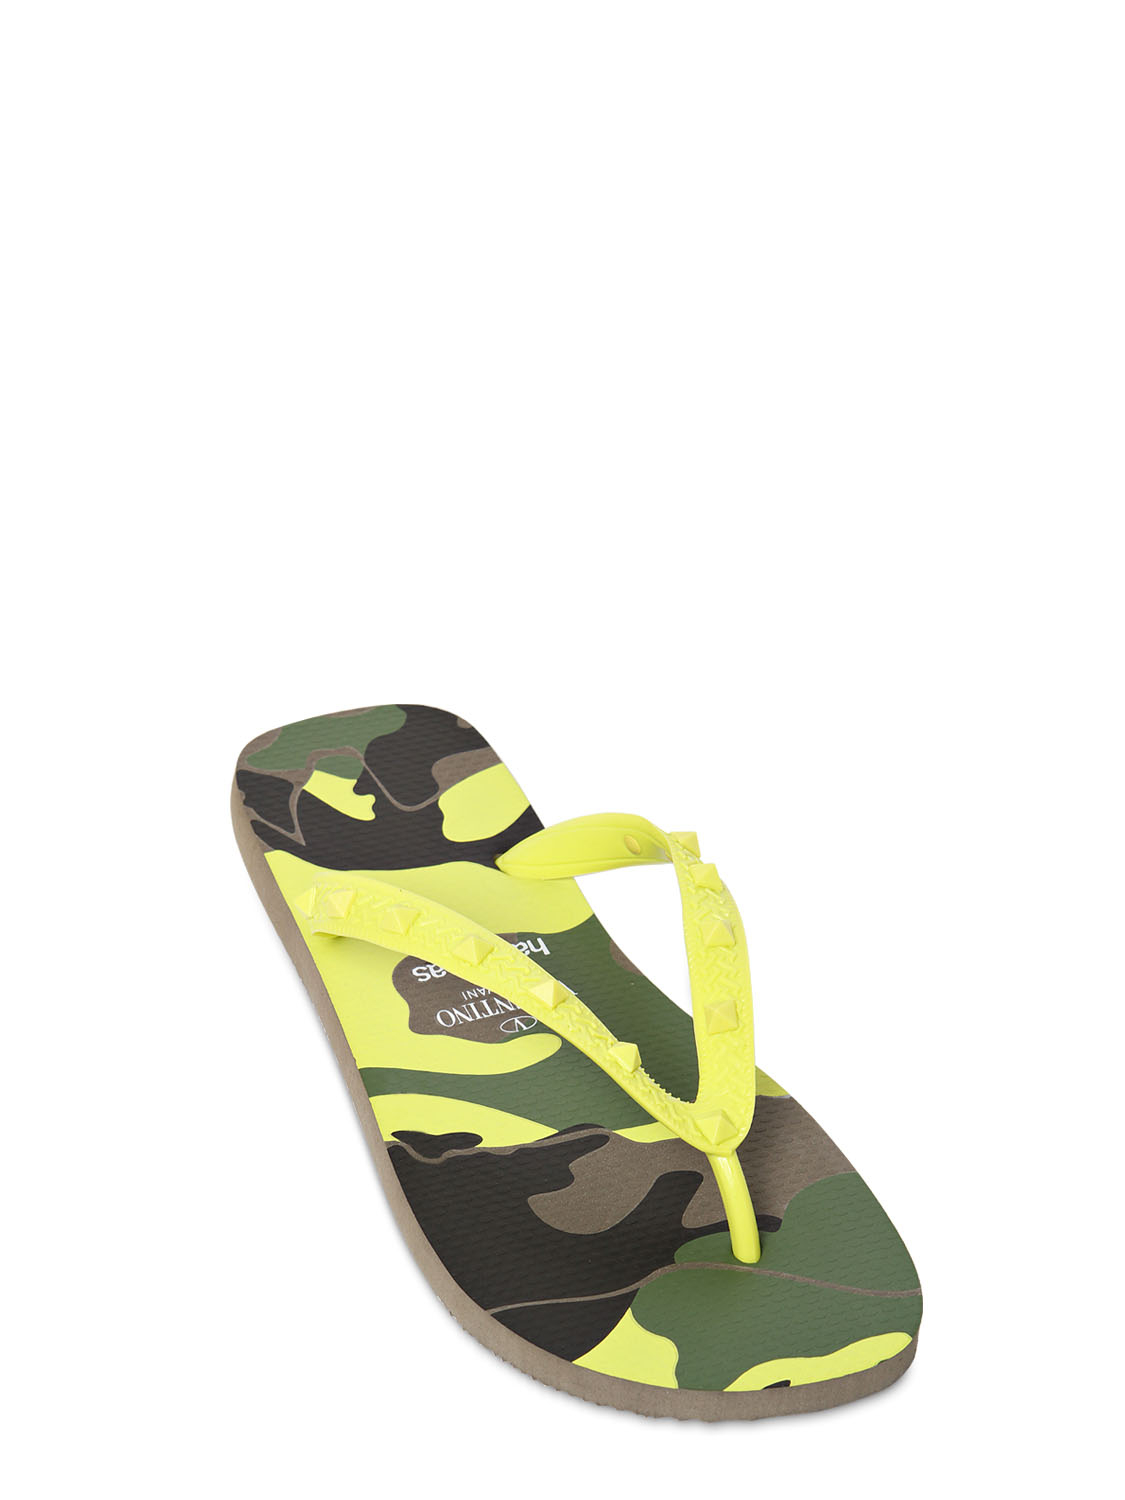 2b8937d0f Lyst - Valentino Studded Rubber Camou Print Flip Flops in Yellow